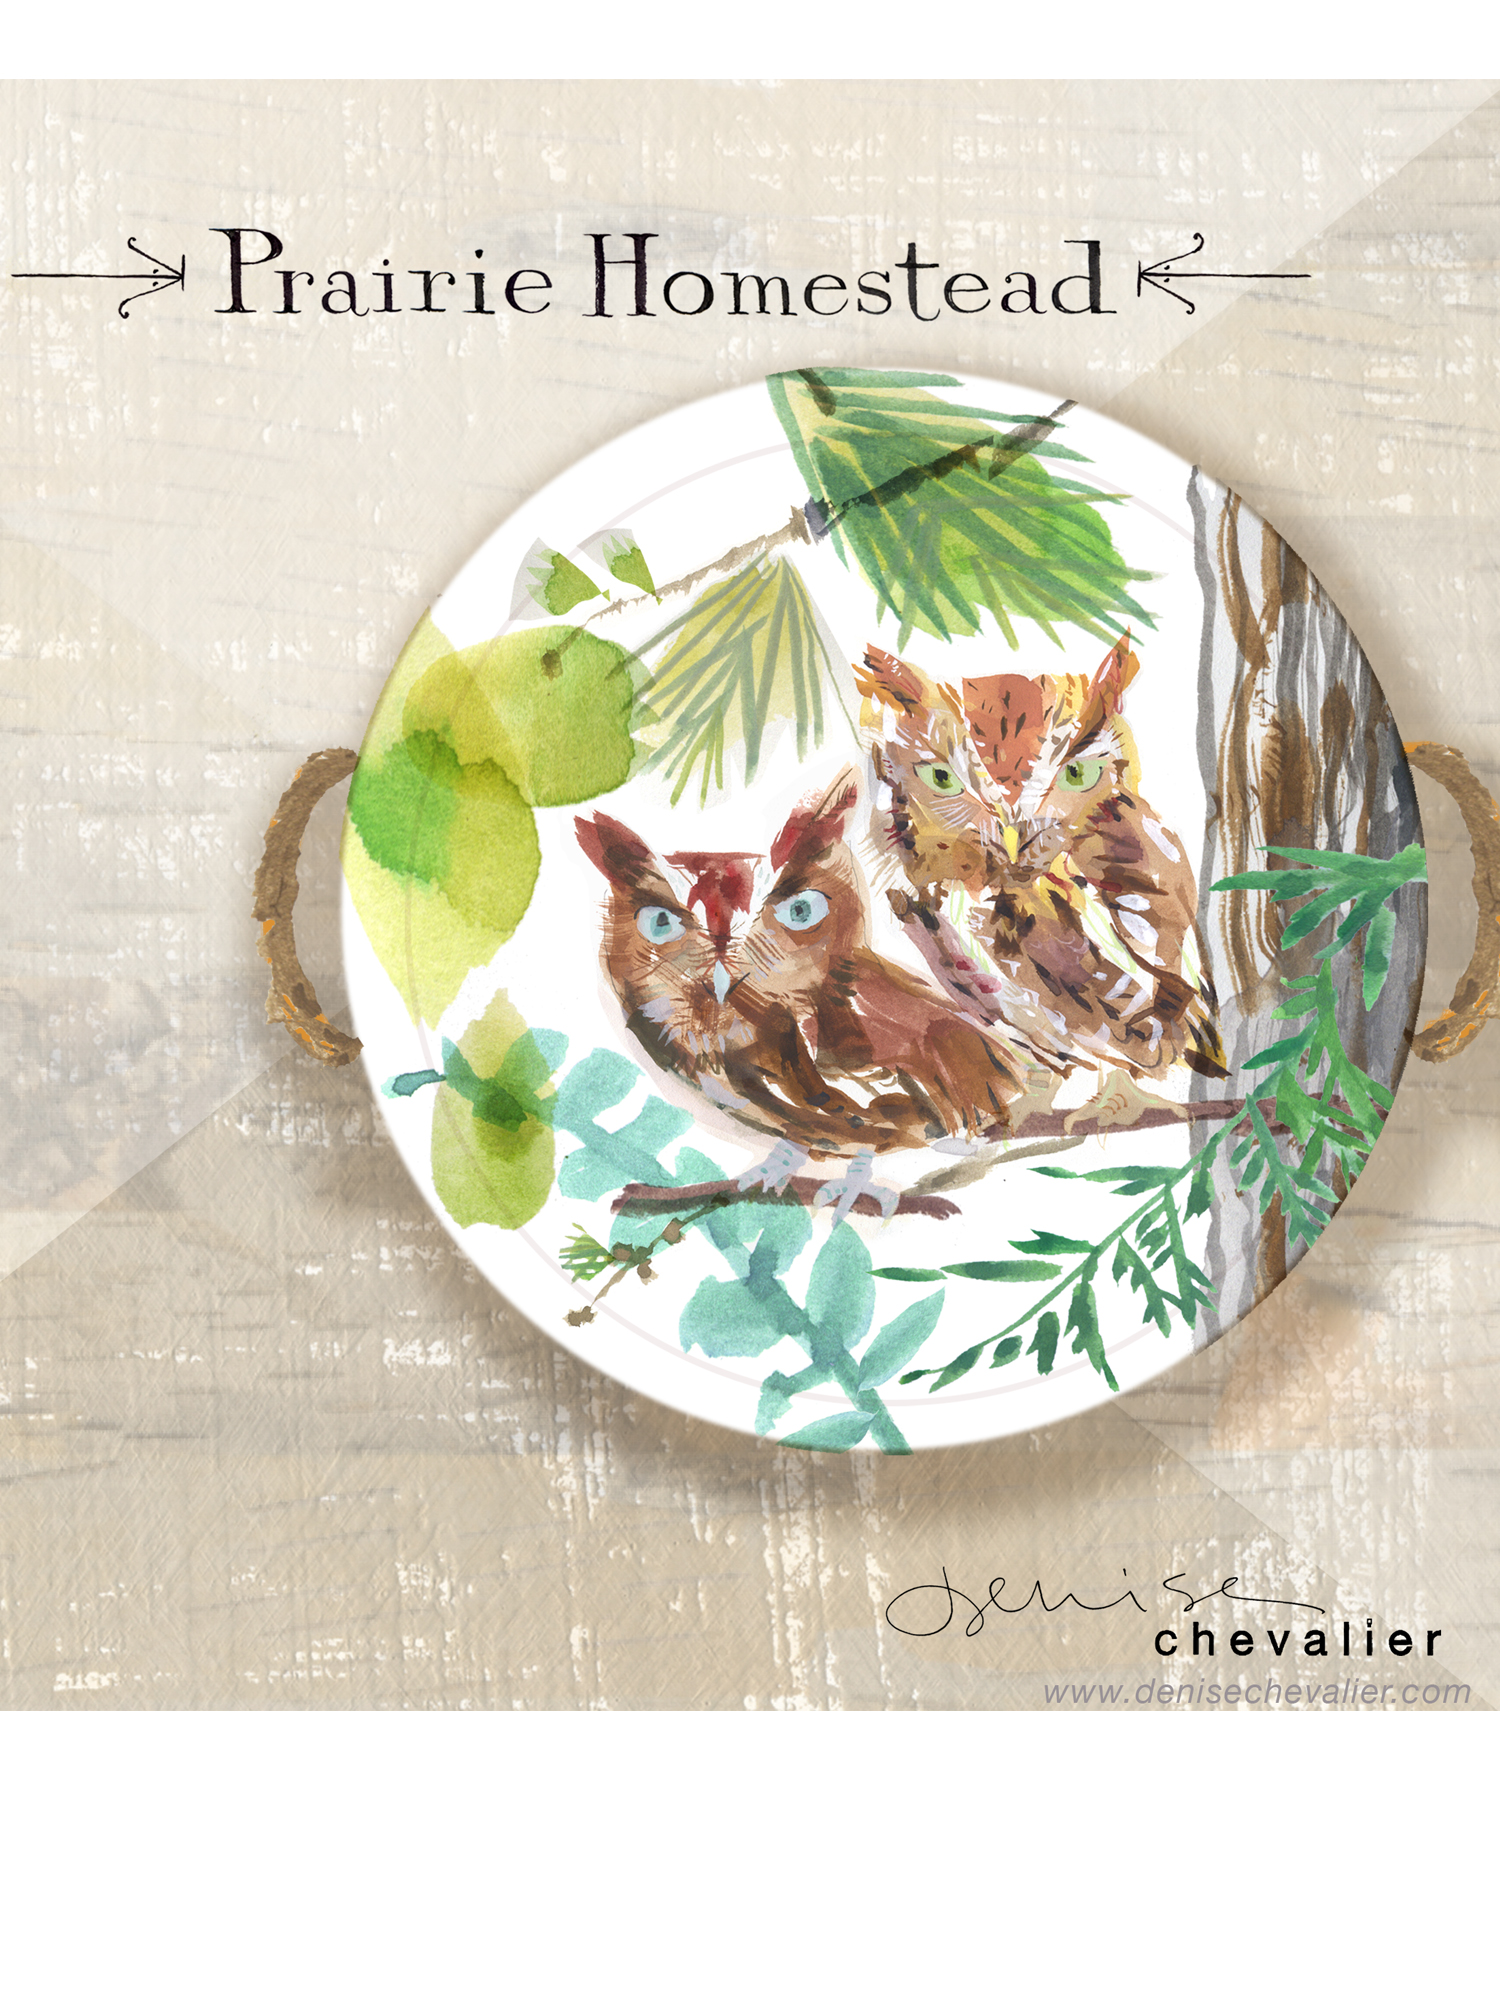 prairie Homestead Owl Tray.jpg